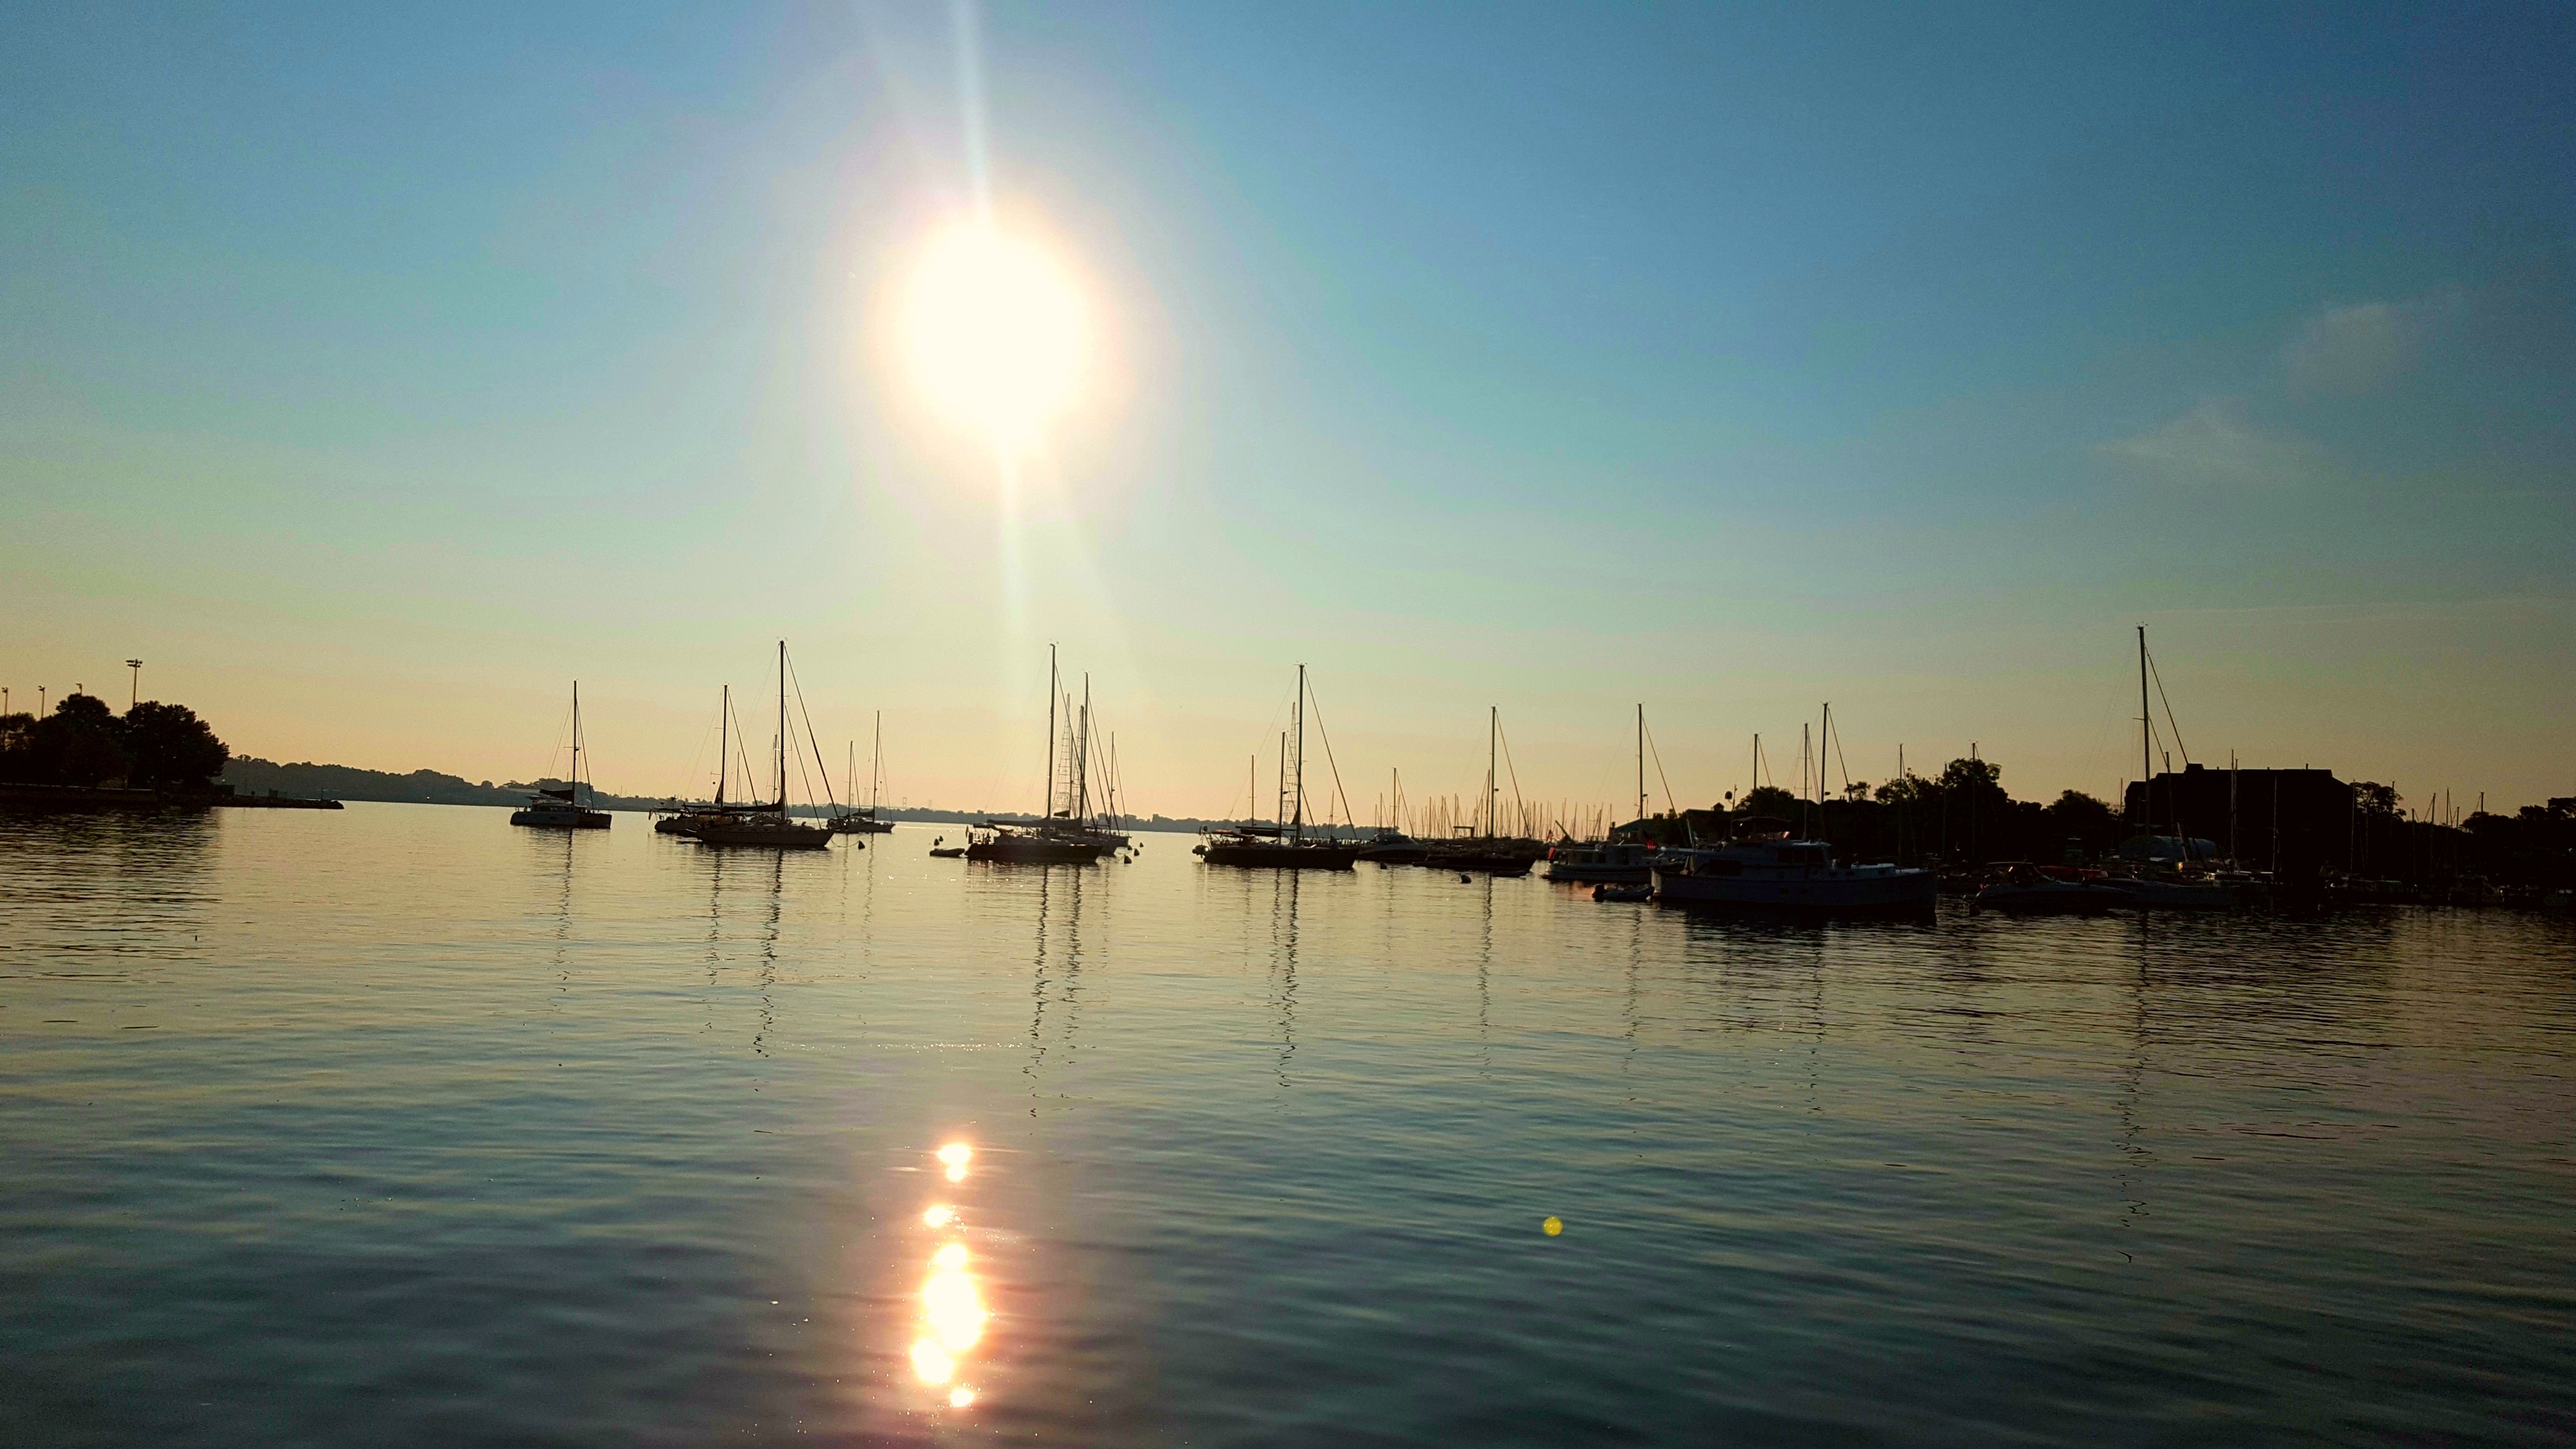 Sun coming up over the calm waters and moored boats in the harbor